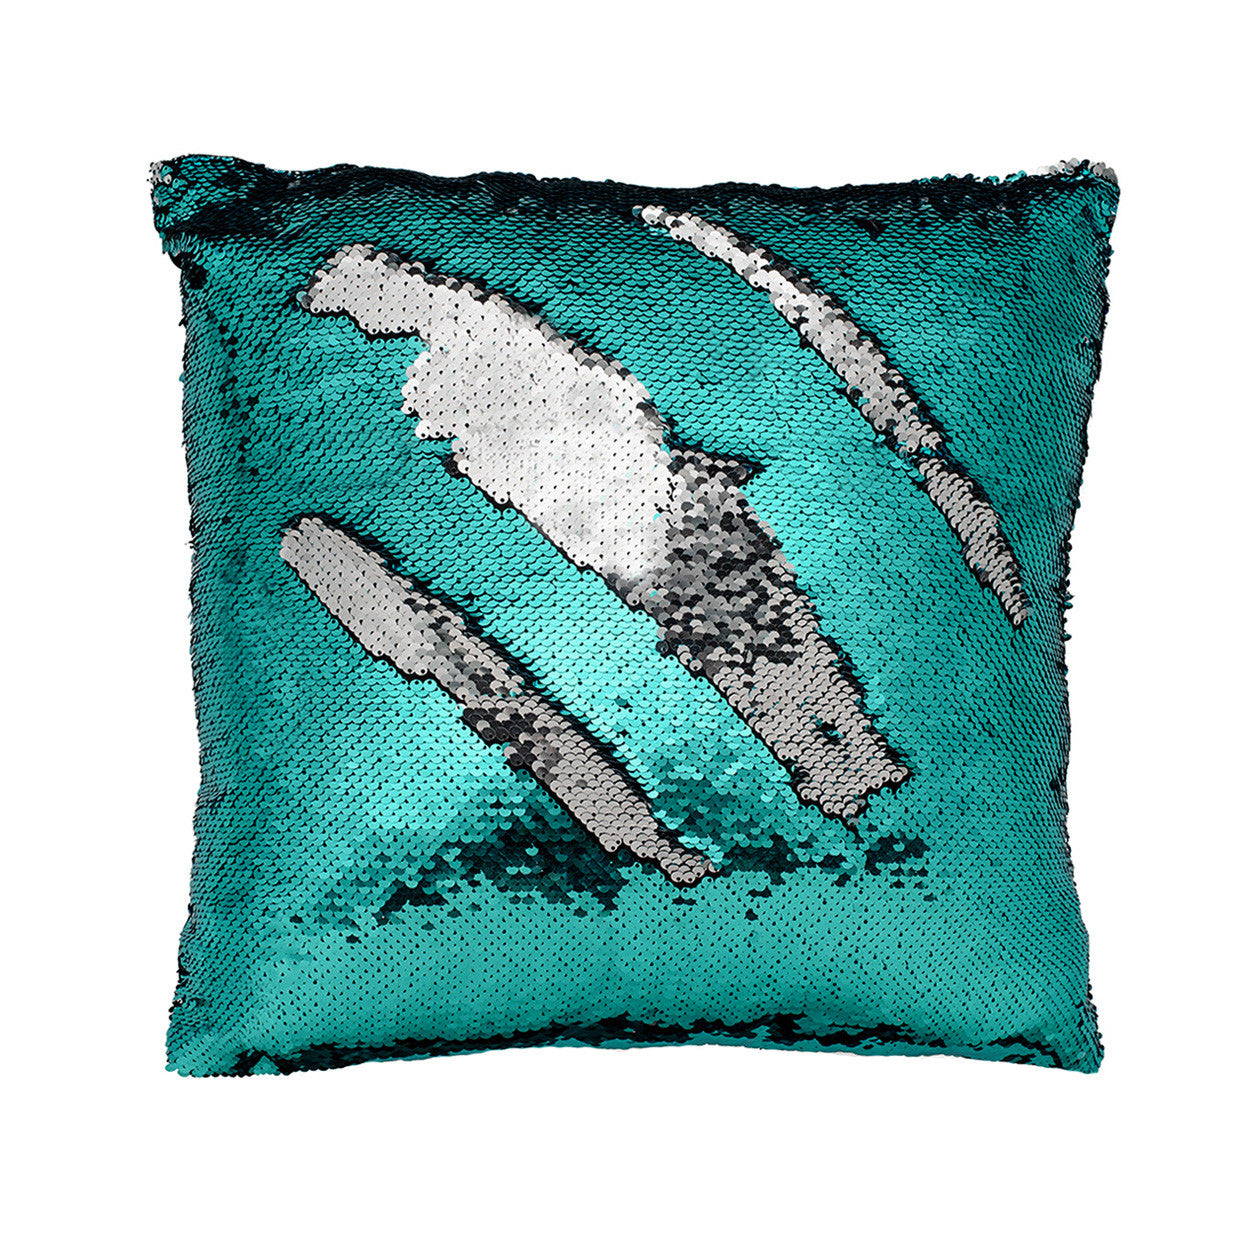 teal and silver mermaid pillow cover color changing sequins - Color Changing Pillow